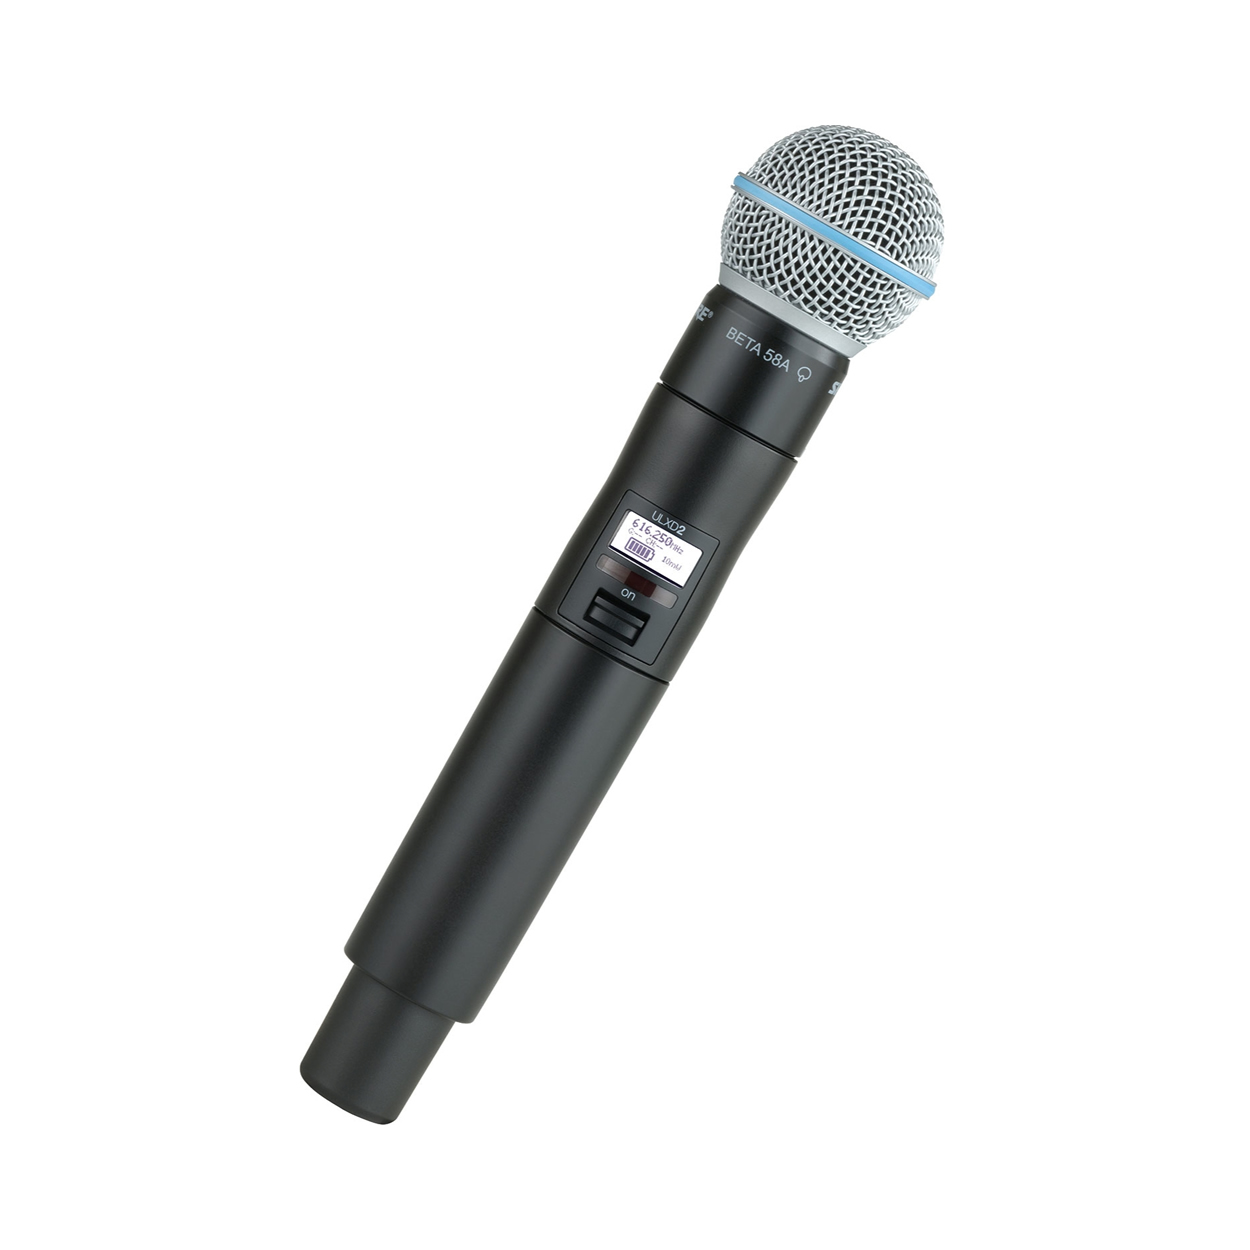 shure ulxd2 beta58 handheld wireless microphone transmitter resolution x. Black Bedroom Furniture Sets. Home Design Ideas